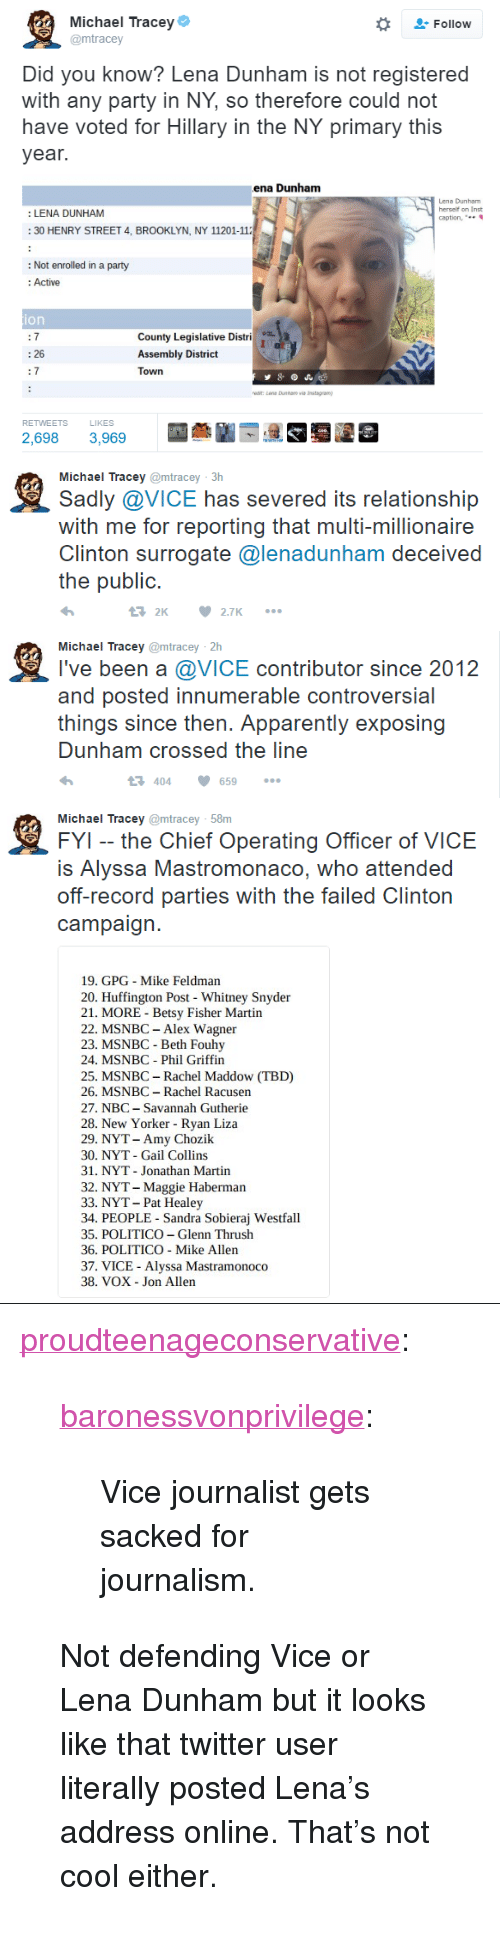 "Apparently, Martin, and Party: Michael Tracey  @mtracey  Follow  Did you know? Lena Dunham is not registered  with any party in NY, so therefore could not  have voted for Hillary in the NY primary this  year.  ena Dunham  Lena Dunham  herself on Inst  caption, ""  : LENA DUNHAM  30 HENRY STREET 4, BROOKLYN, NY 11201-11  : Not enrolled in a party  : Active  ion  County Legislative Distri  Assembly District  Town  : 26  7  RETWEETS  LIKES  2,698 3,969   Michael Tracey @mtracey 3h  Sadly @VICE has severed its relationship  with me for reporting that multi-millionaire  Clinton surTogatc @lenadunham deceived  the public.  2 2.7   鬼  Michael Tracey @mtracey 2h  I've been a @VICE contributor since 2012  and posted innumerable controversial  things since then. Apparently exposing  Dunham crossed the line  404659   Michael Tracey @mtracey 58m  FYI -- the Chief Operating Officer of VICE  IS Alyssa Mastromonaco, who attended  oft-record parties with the talled Clinton  campaign.  19. GPG Mike Feldman  20. Huffington Post Whitney Snyder  21. MORE - Betsy Fisher Martin  22. MSNBC - Alex Wagner  23. MSNBC - Beth Fouhy  24. MSNBC Phil Griffin  25. MSNBC- Rachel Maddow (TBD)  26. MSNBC Rachel Racusen  27. NBC -Savannah Gutherie  28. New Yorker - Ryan Liza  29. NYT- Amy Chozik  30. NYT - Gail Collins  31. NYT Jonathan Martin  32. NYT- Maggie Haberman  33. NYT- Pat Healey  34. PEOPLE Sandra Sobieraj Westfall  35. POLITICO -Glenn Thrush  36. POLITICO - Mike Allen  37. VICE Alyssa Mastramonoco  38. VOX Jon Allen <p><a href=""http://proudteenageconservative.tumblr.com/post/153064366164/baronessvonprivilege-vice-journalist-gets-sacked"" class=""tumblr_blog"">proudteenageconservative</a>:</p>  <blockquote><p><a class=""tumblr_blog"" href=""http://baronessvonprivilege.tumblr.com/post/153050254749"">baronessvonprivilege</a>:</p><blockquote> <p>Vice journalist gets sacked for journalism.</p> </blockquote>  <p>Not defending Vice or Lena Dunham but it looks like that twitter user literally posted Lena's address online. That's not cool either.</p></blockquote>"